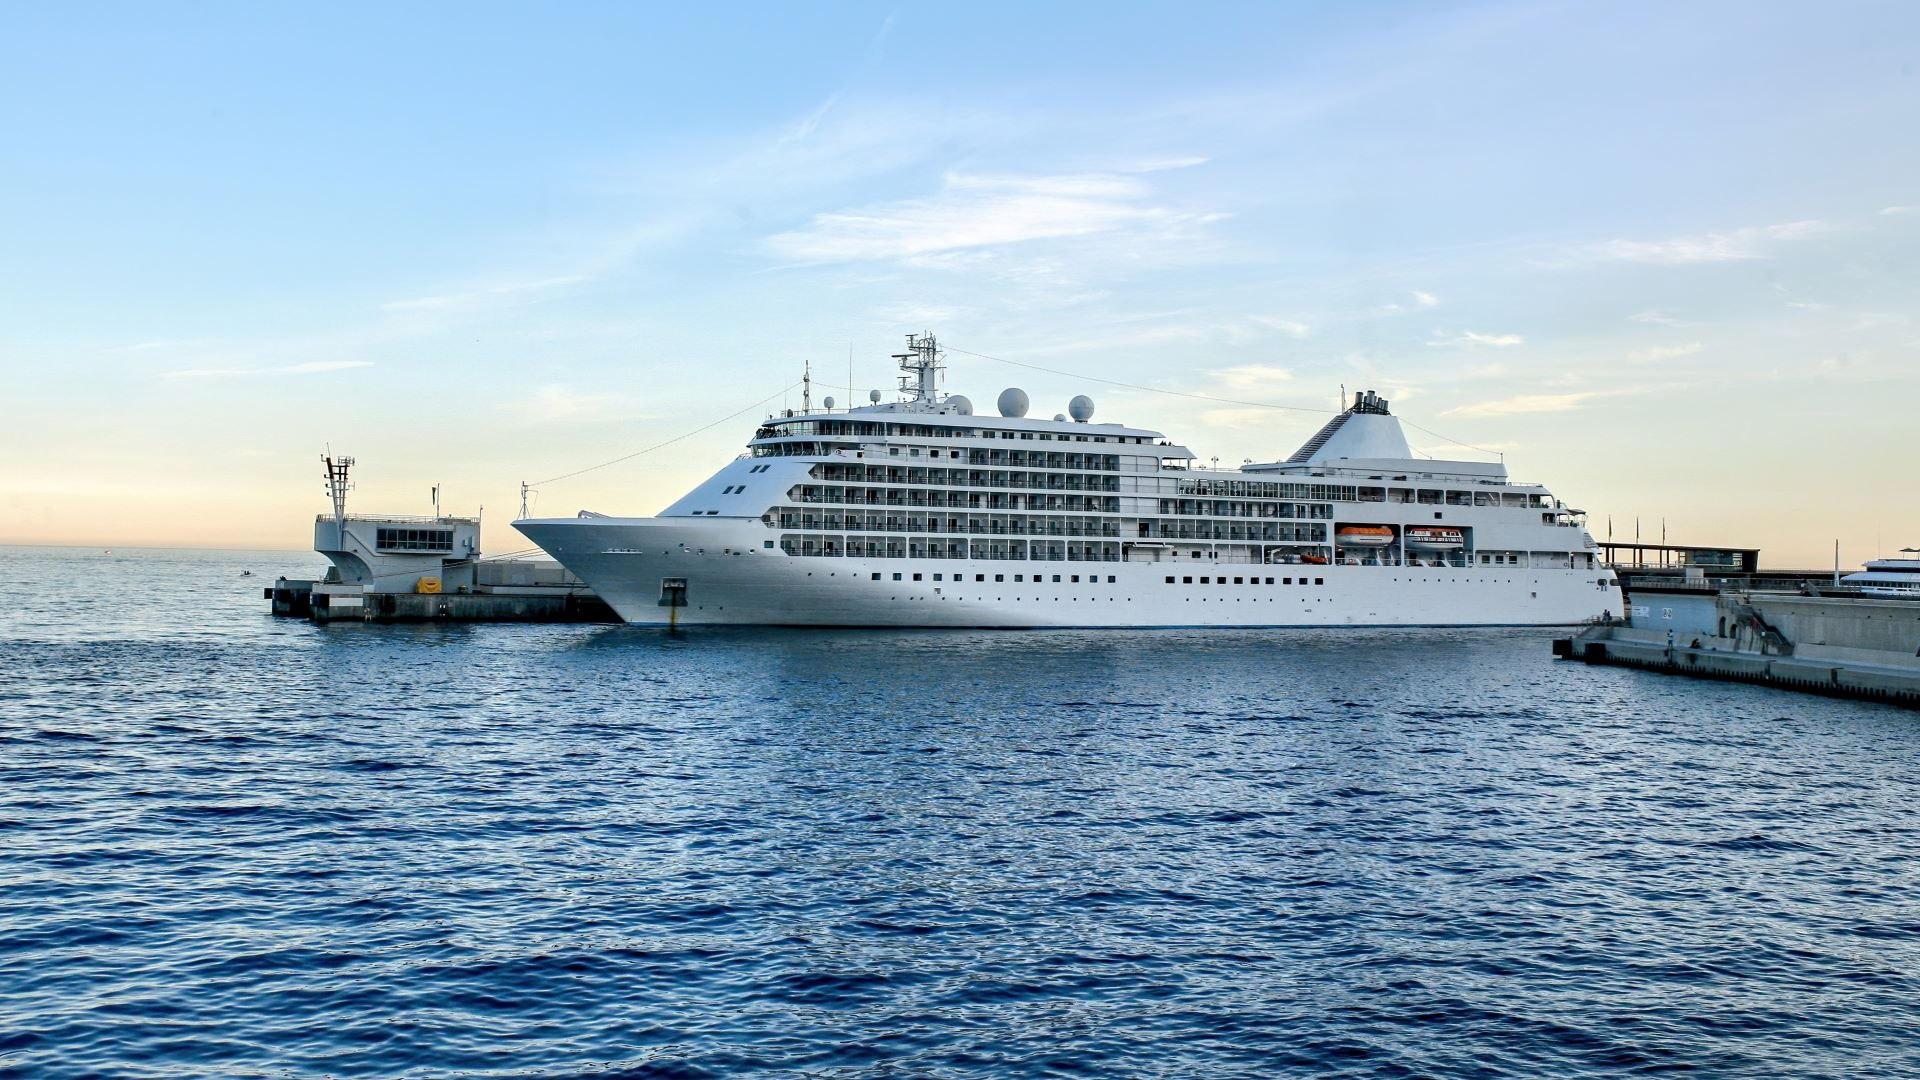 Award-winning cruise ship about to travel from port